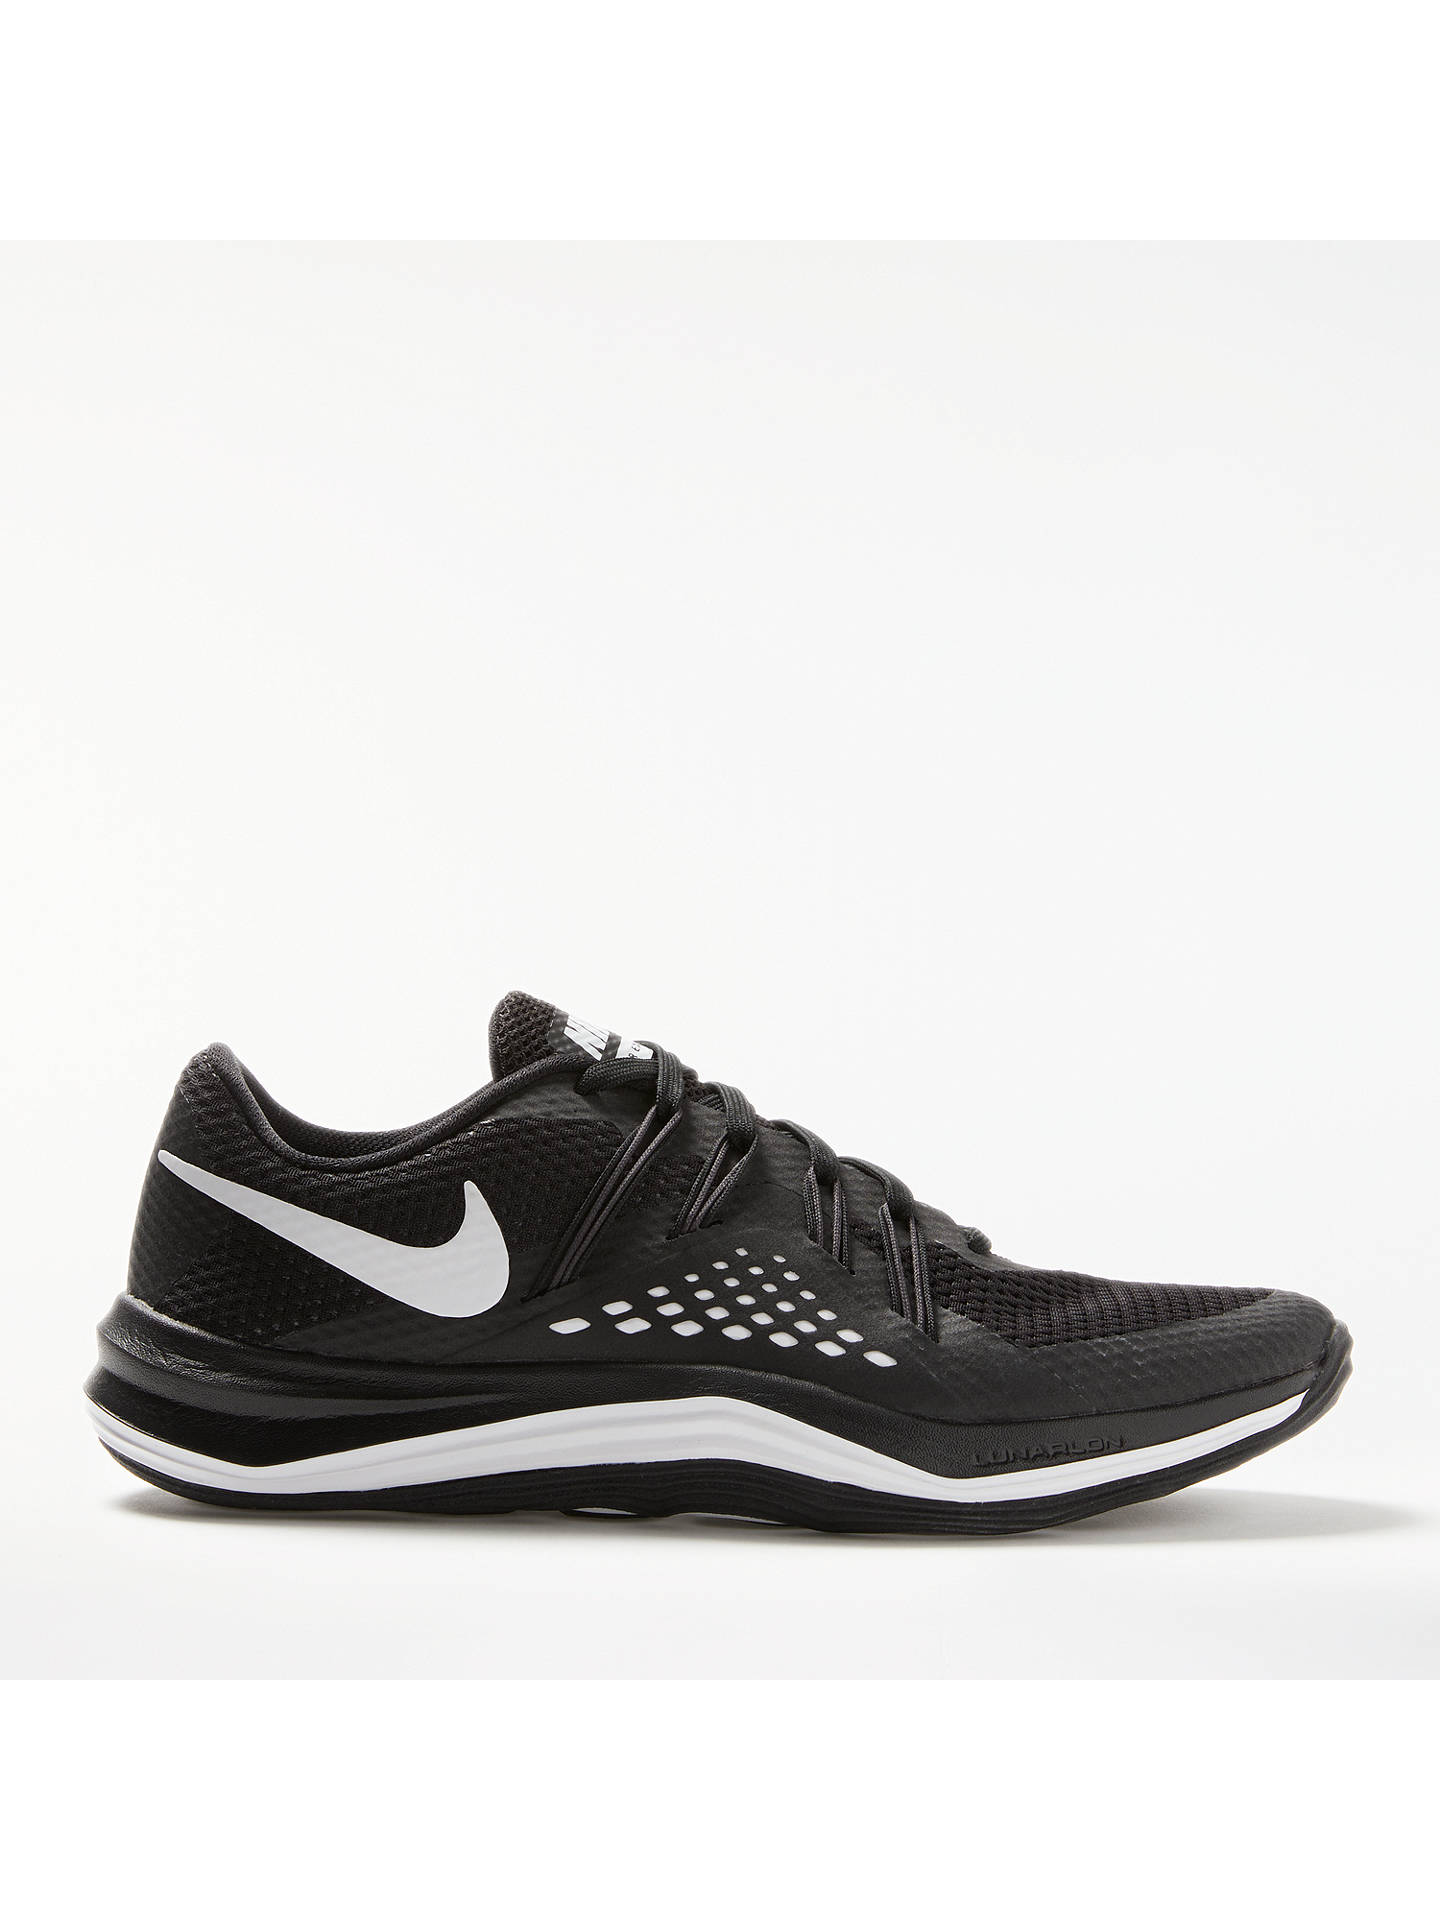 91f1d1d507d3 Buy Nike Lunar Exceed TR Women s Training Shoes